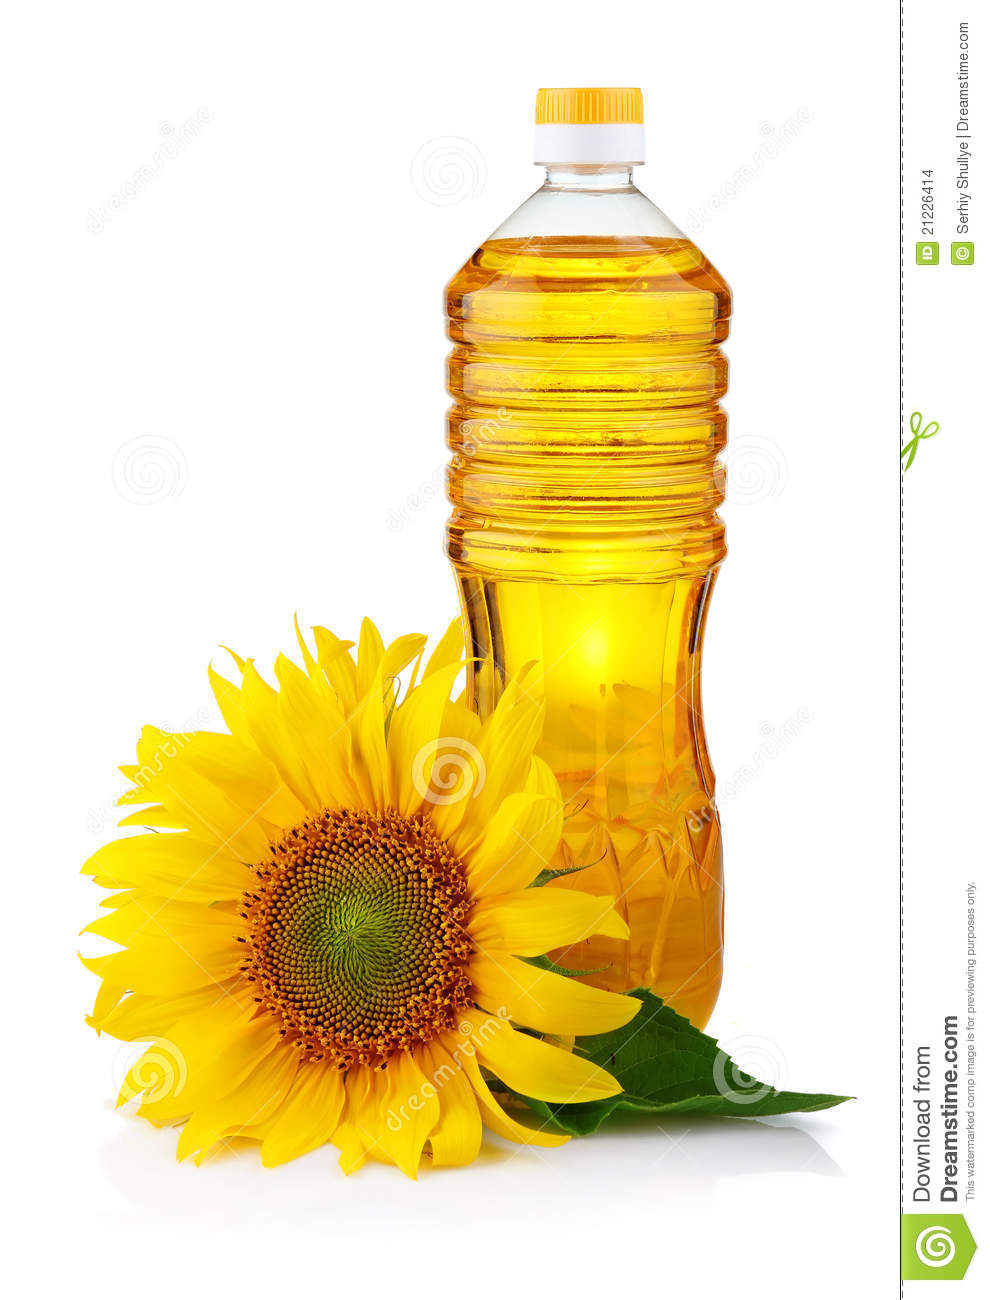 Bottle of sunflower oil with flower isolated